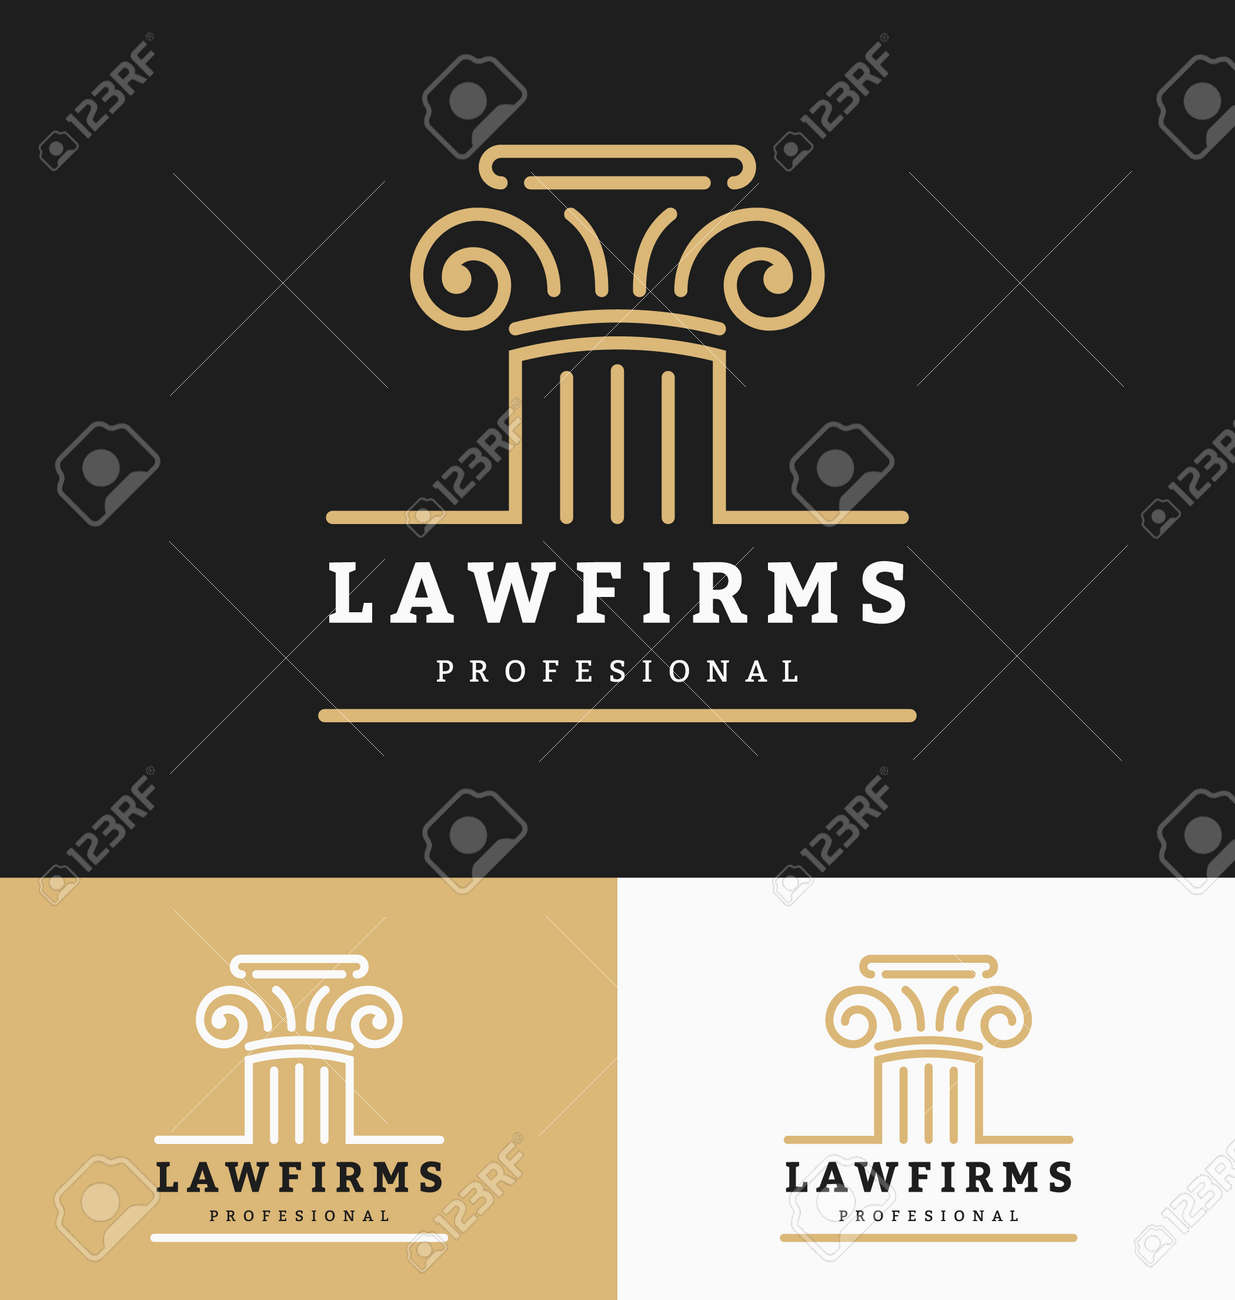 Law firms logo template with space for business slogan and tags line. Vector illustration - 52190162